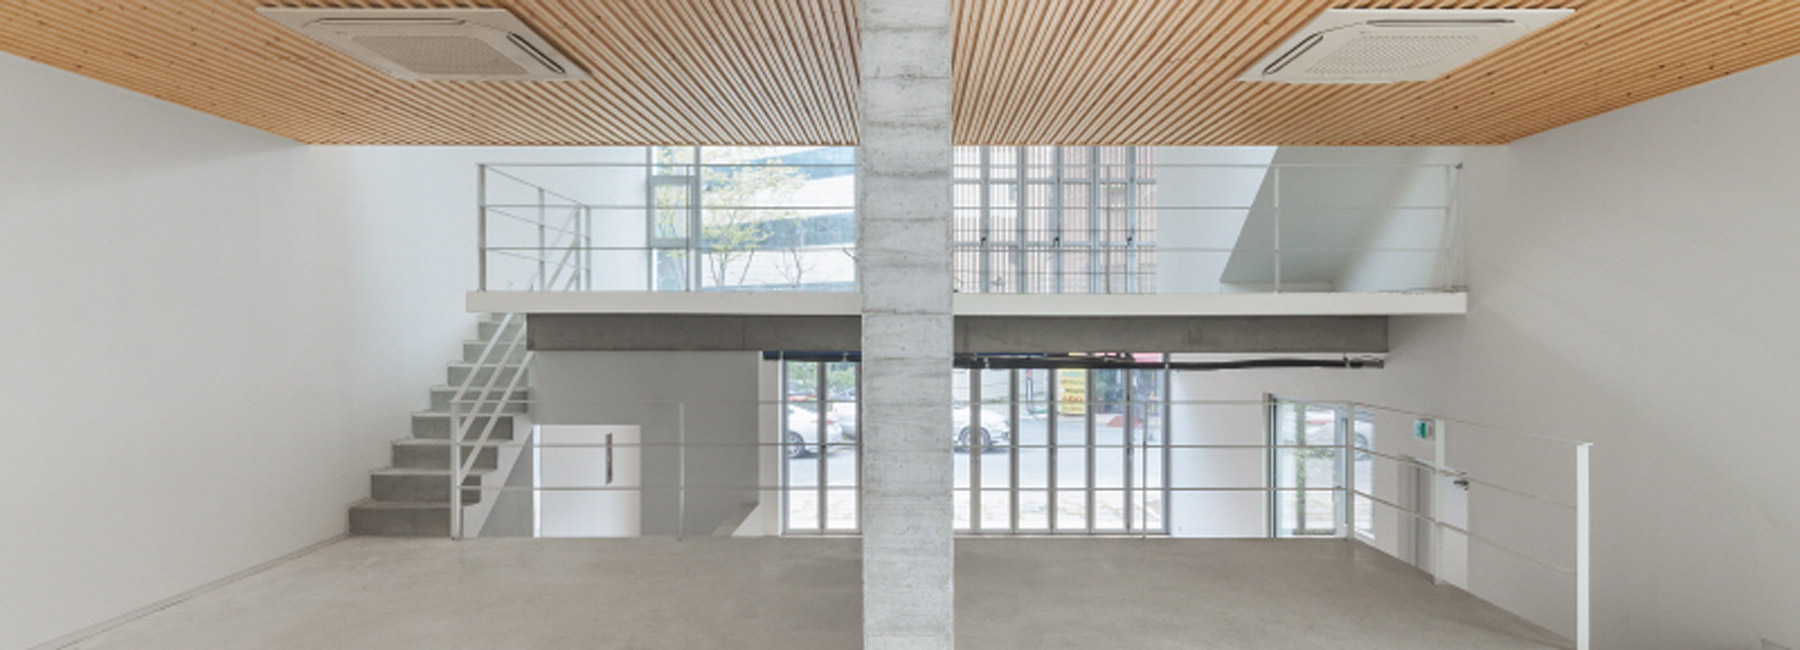 2m2 architects designs korean caf with a skip floor layout and contrasting materials